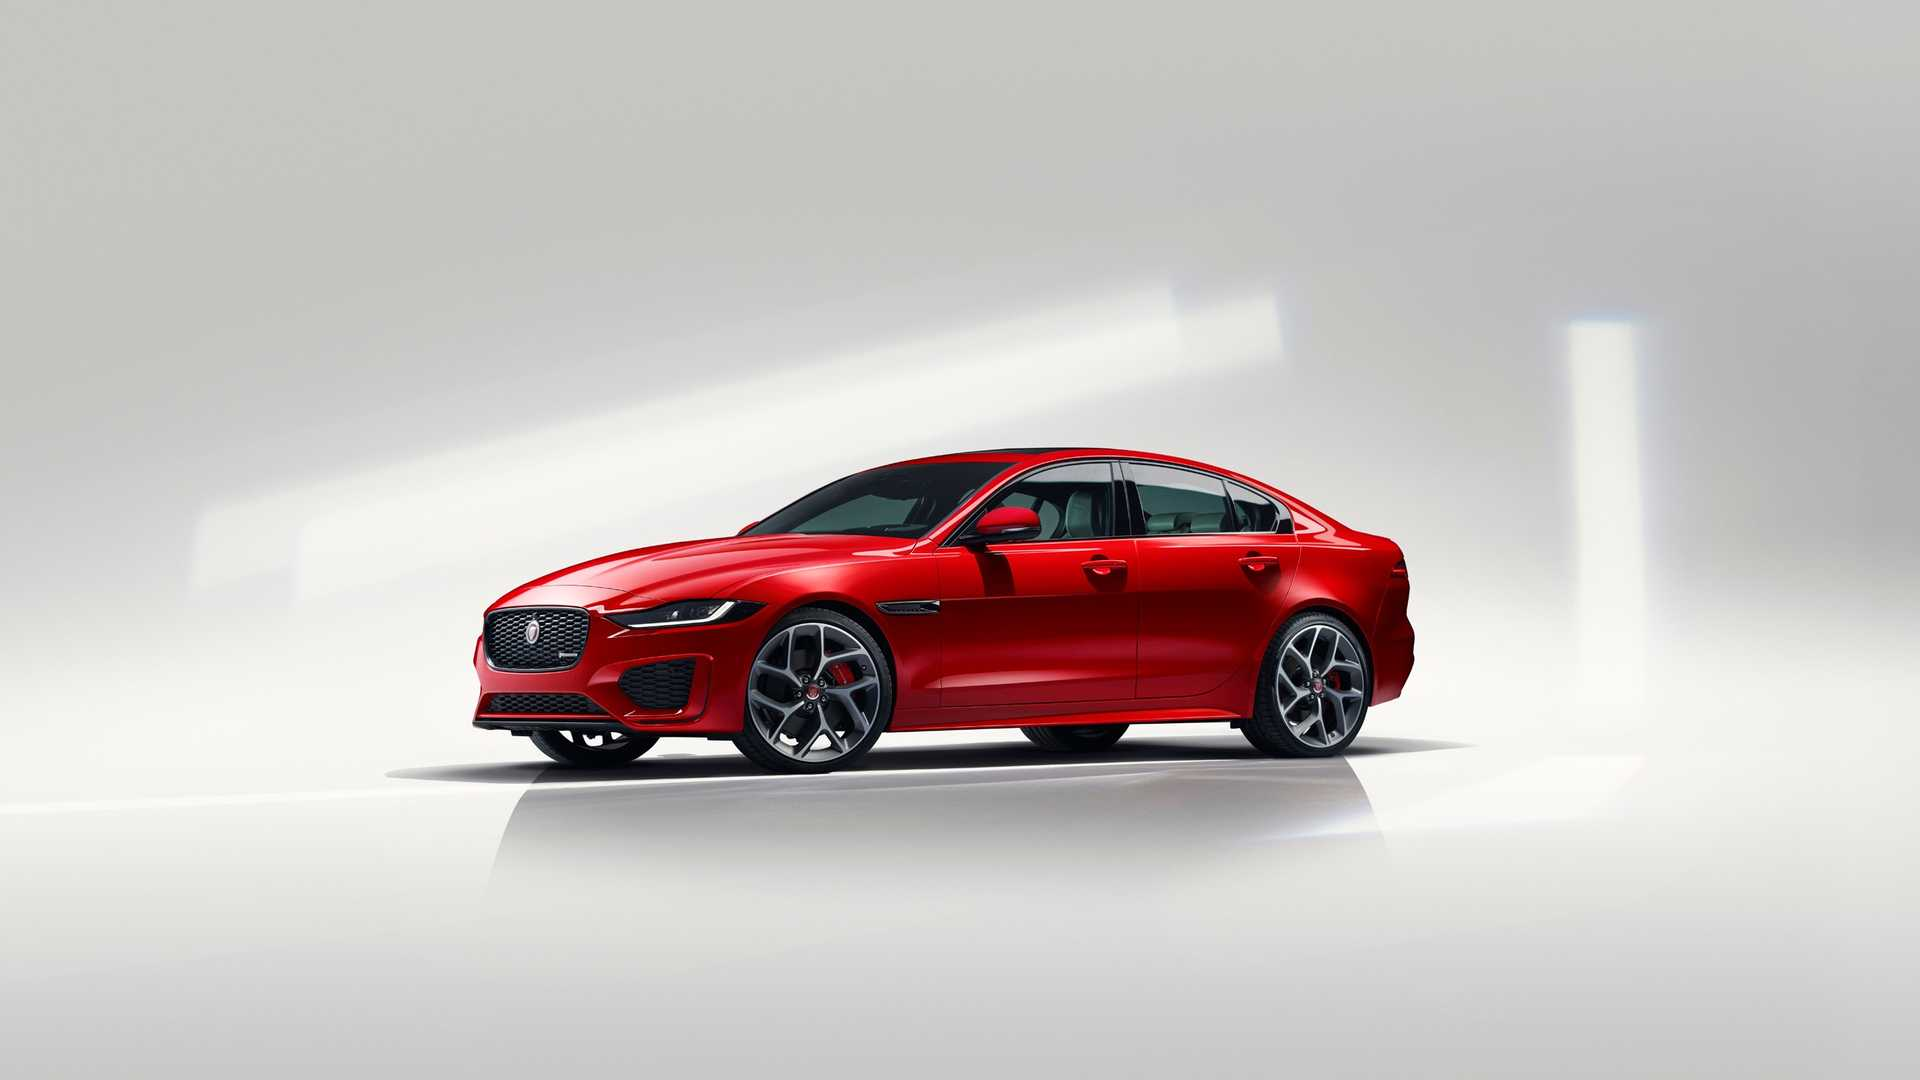 87 The Best Jaguar Xe 2020 Brasil Reviews